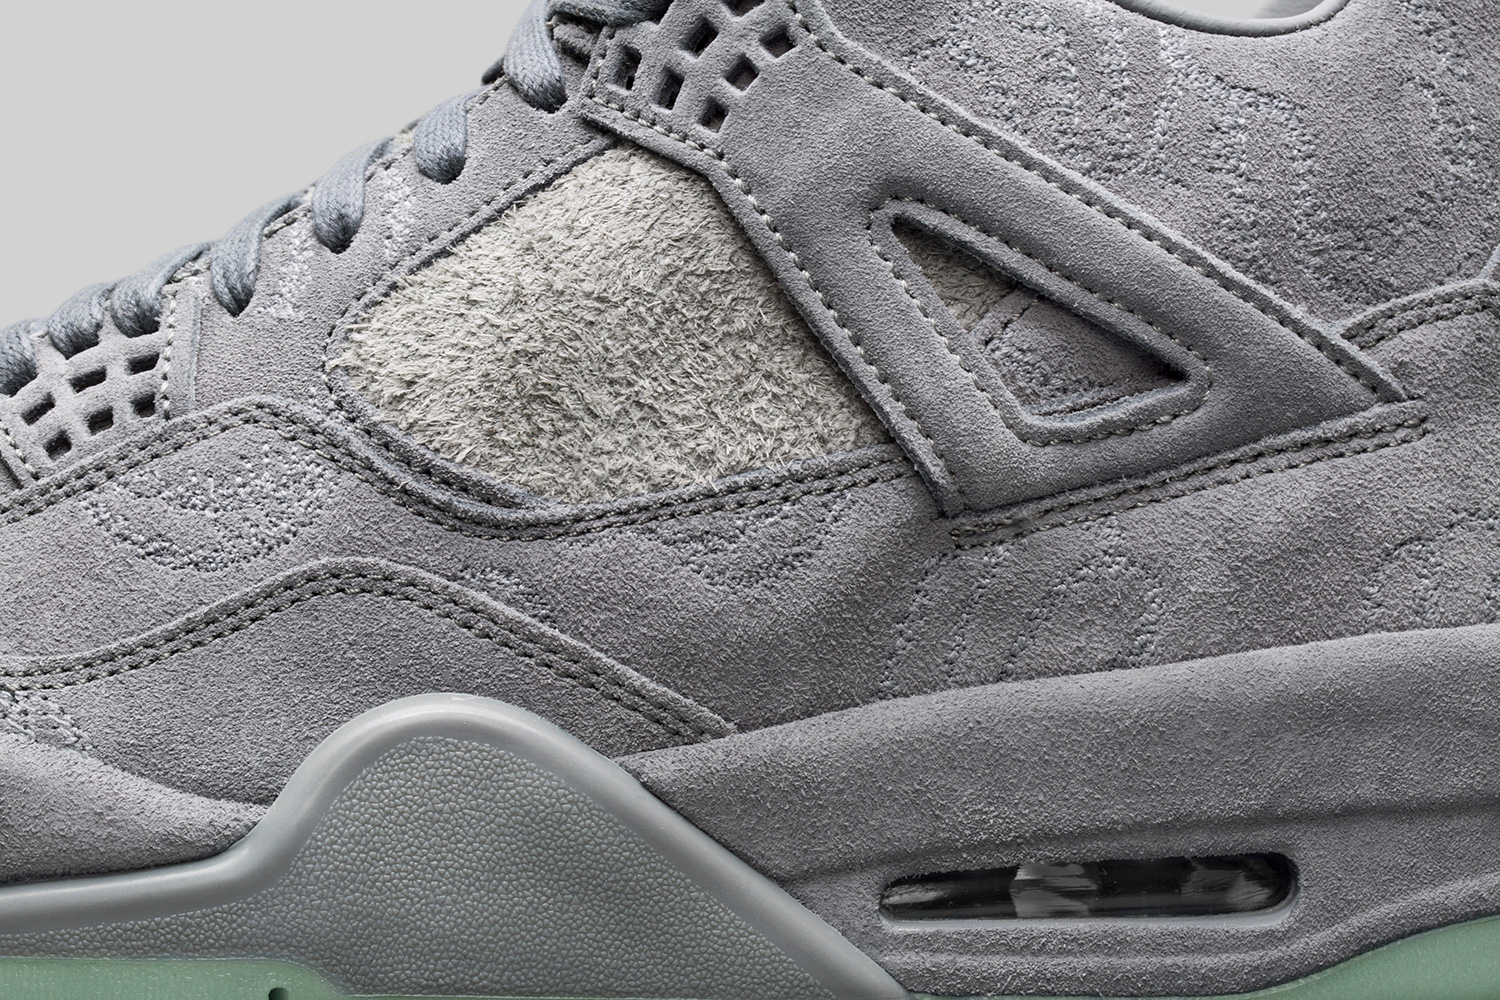 kaws-air-jordan-4-official-images-06